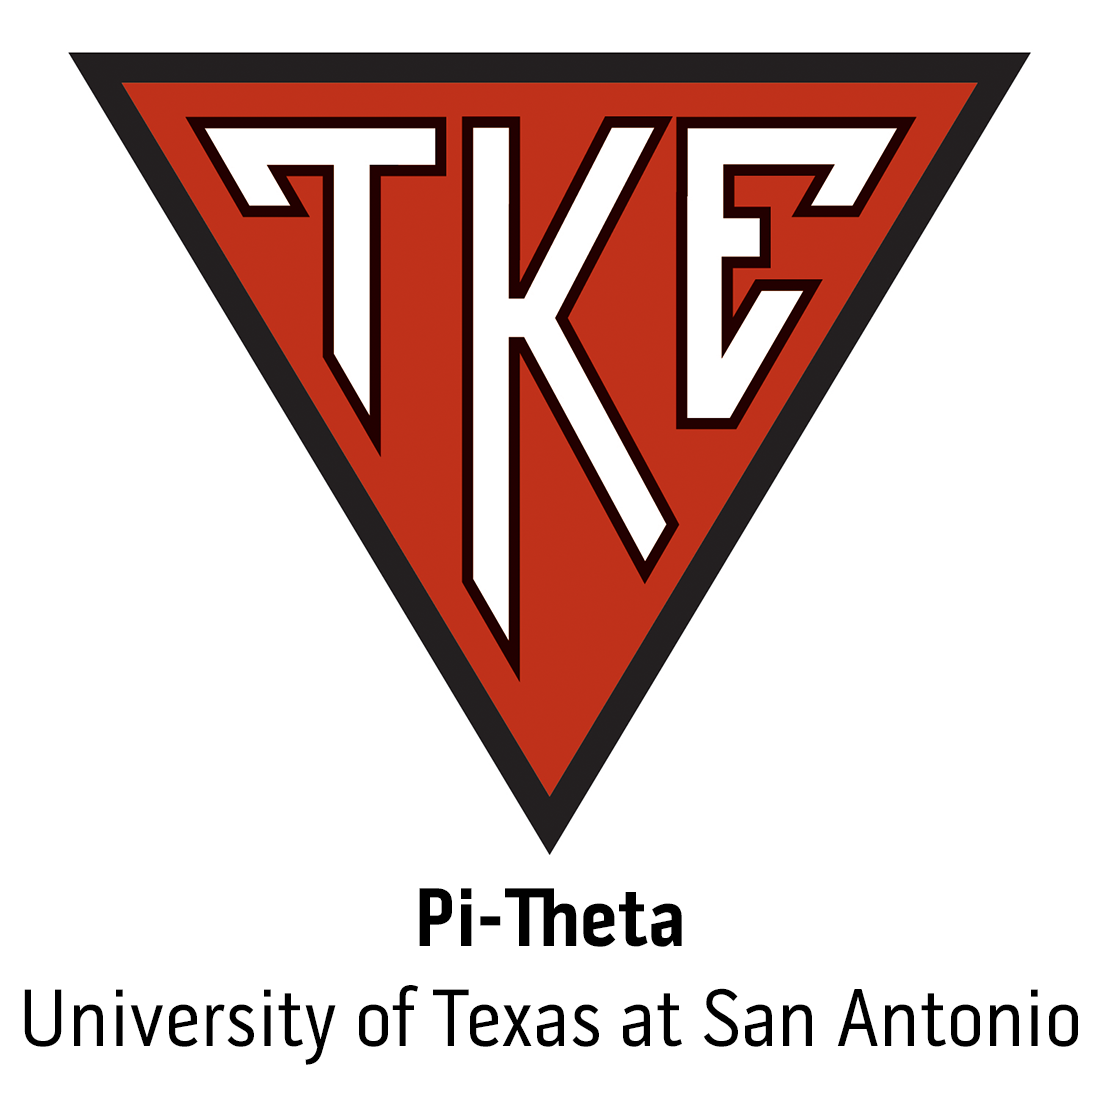 Pi-Theta Chapter at University of Texas at San Antonio